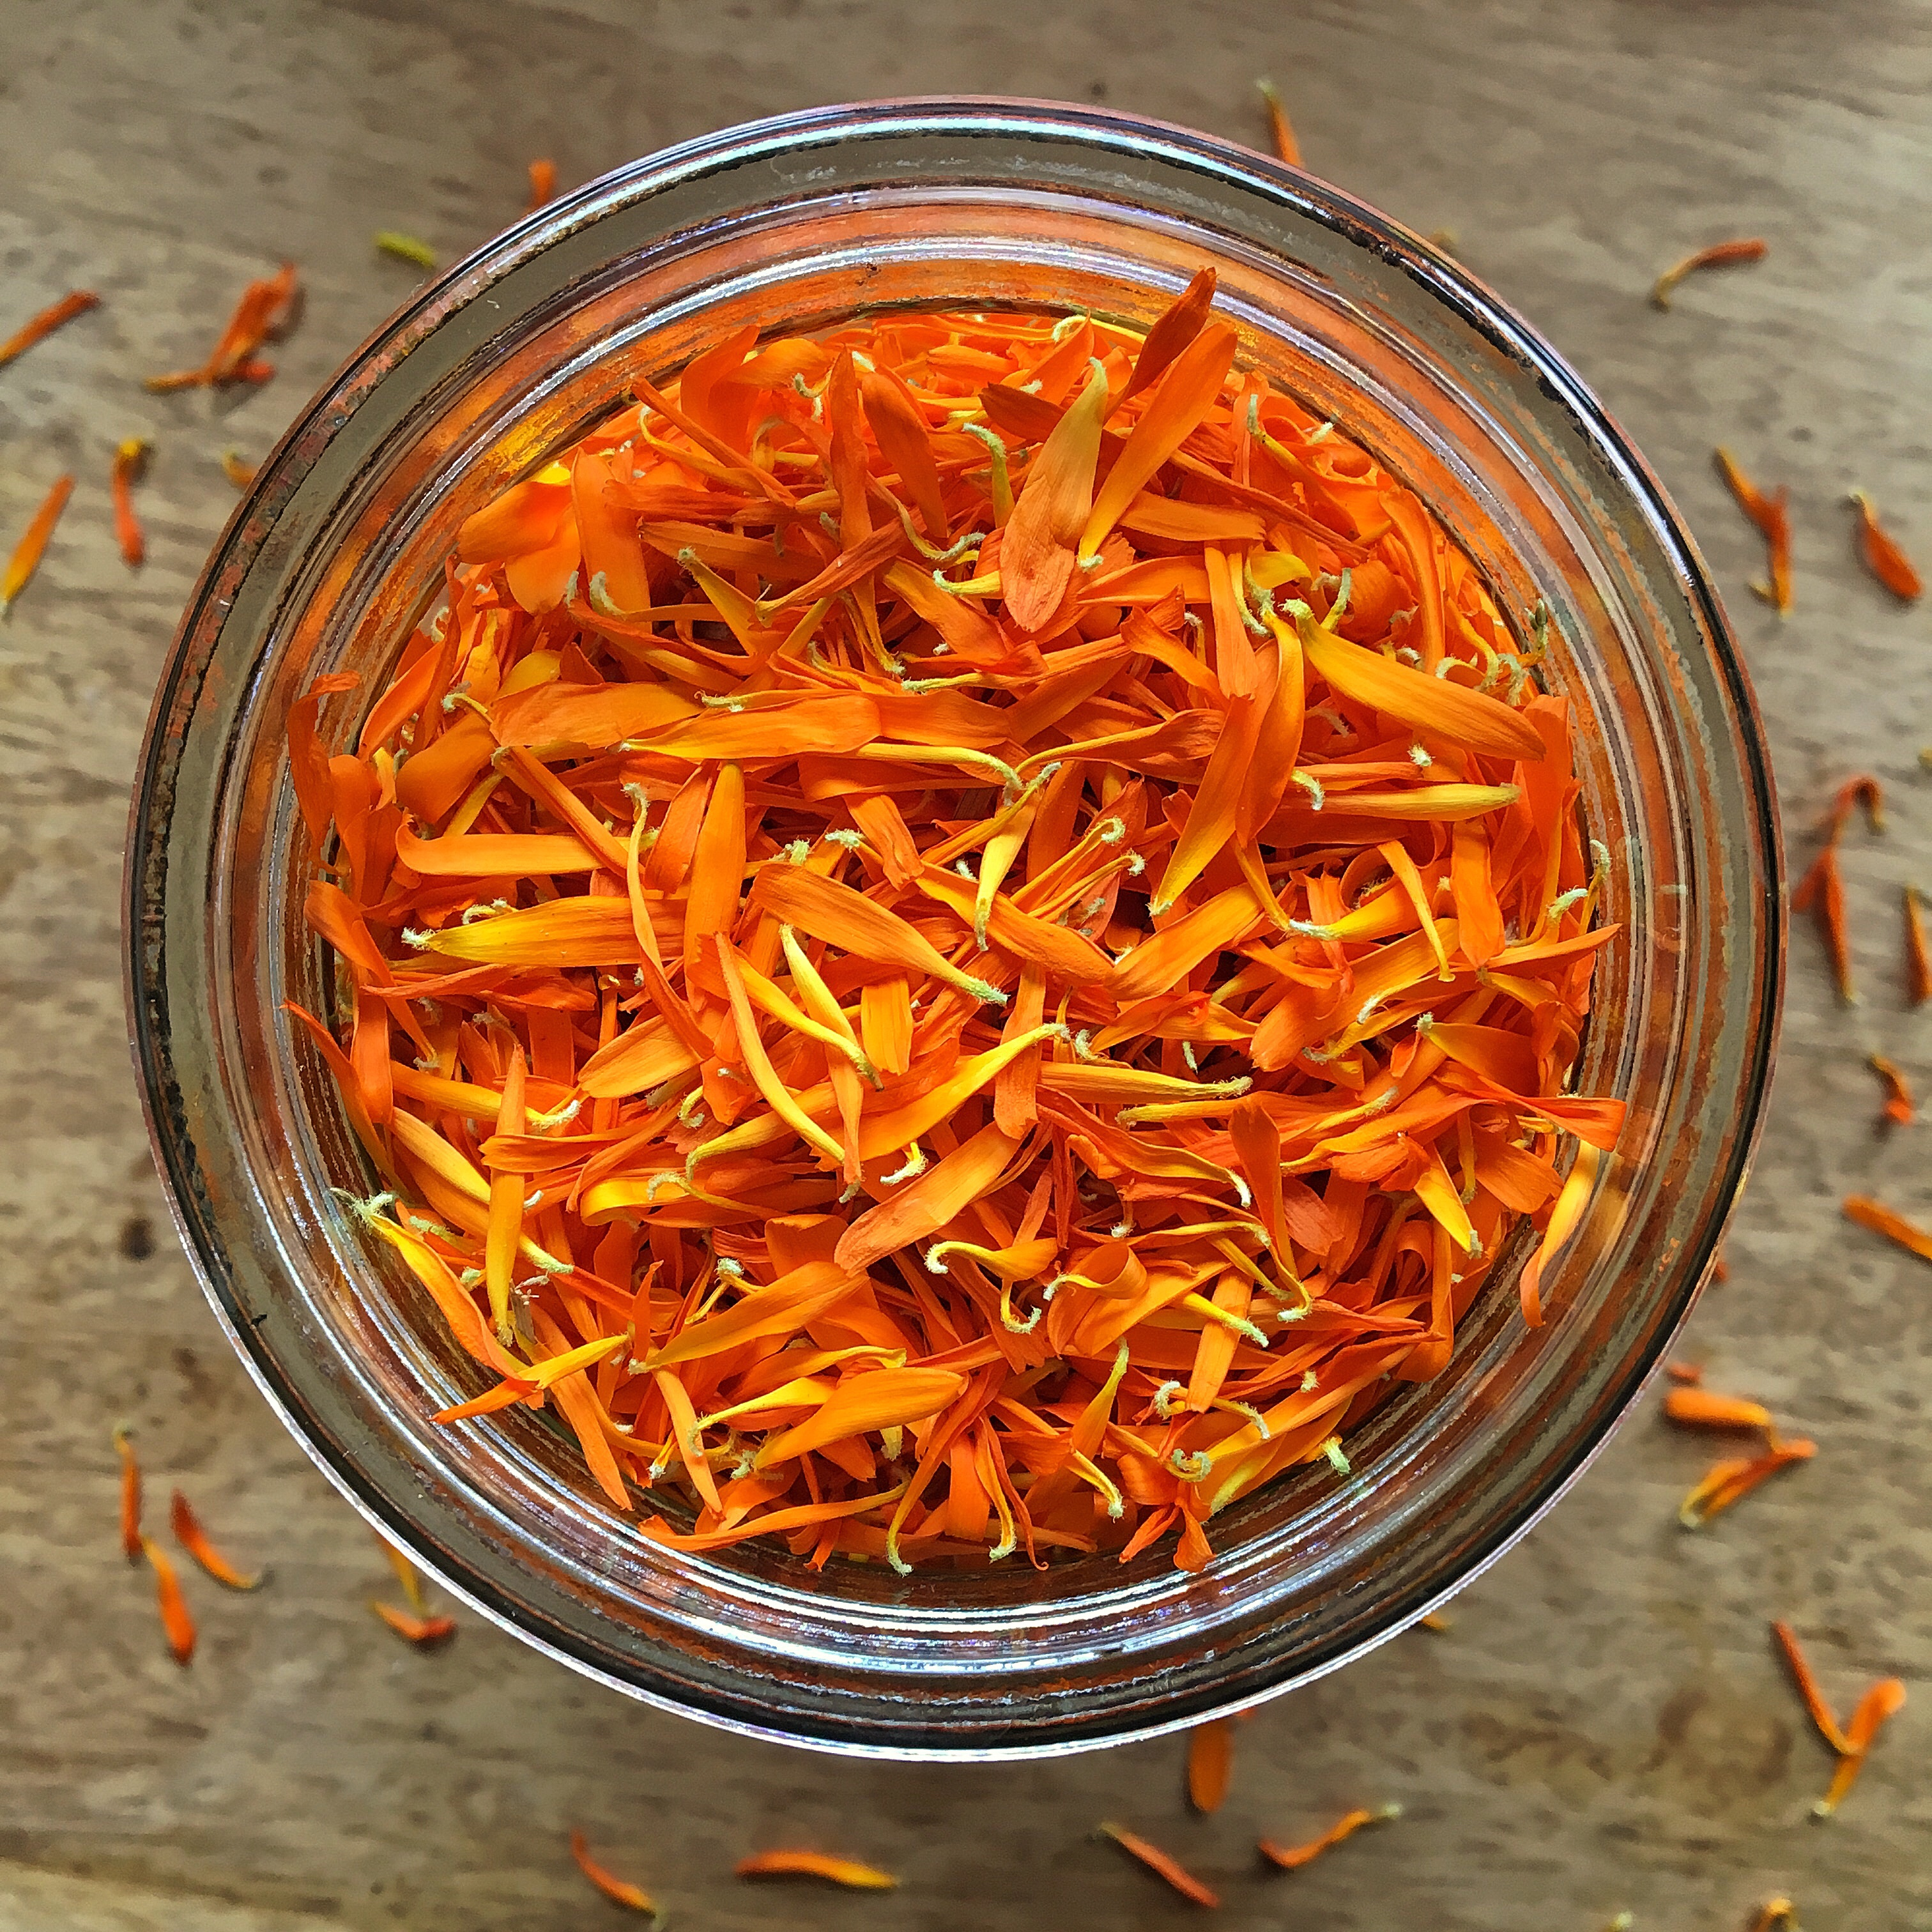 Dried calendula petals, easy to store and ready for use.